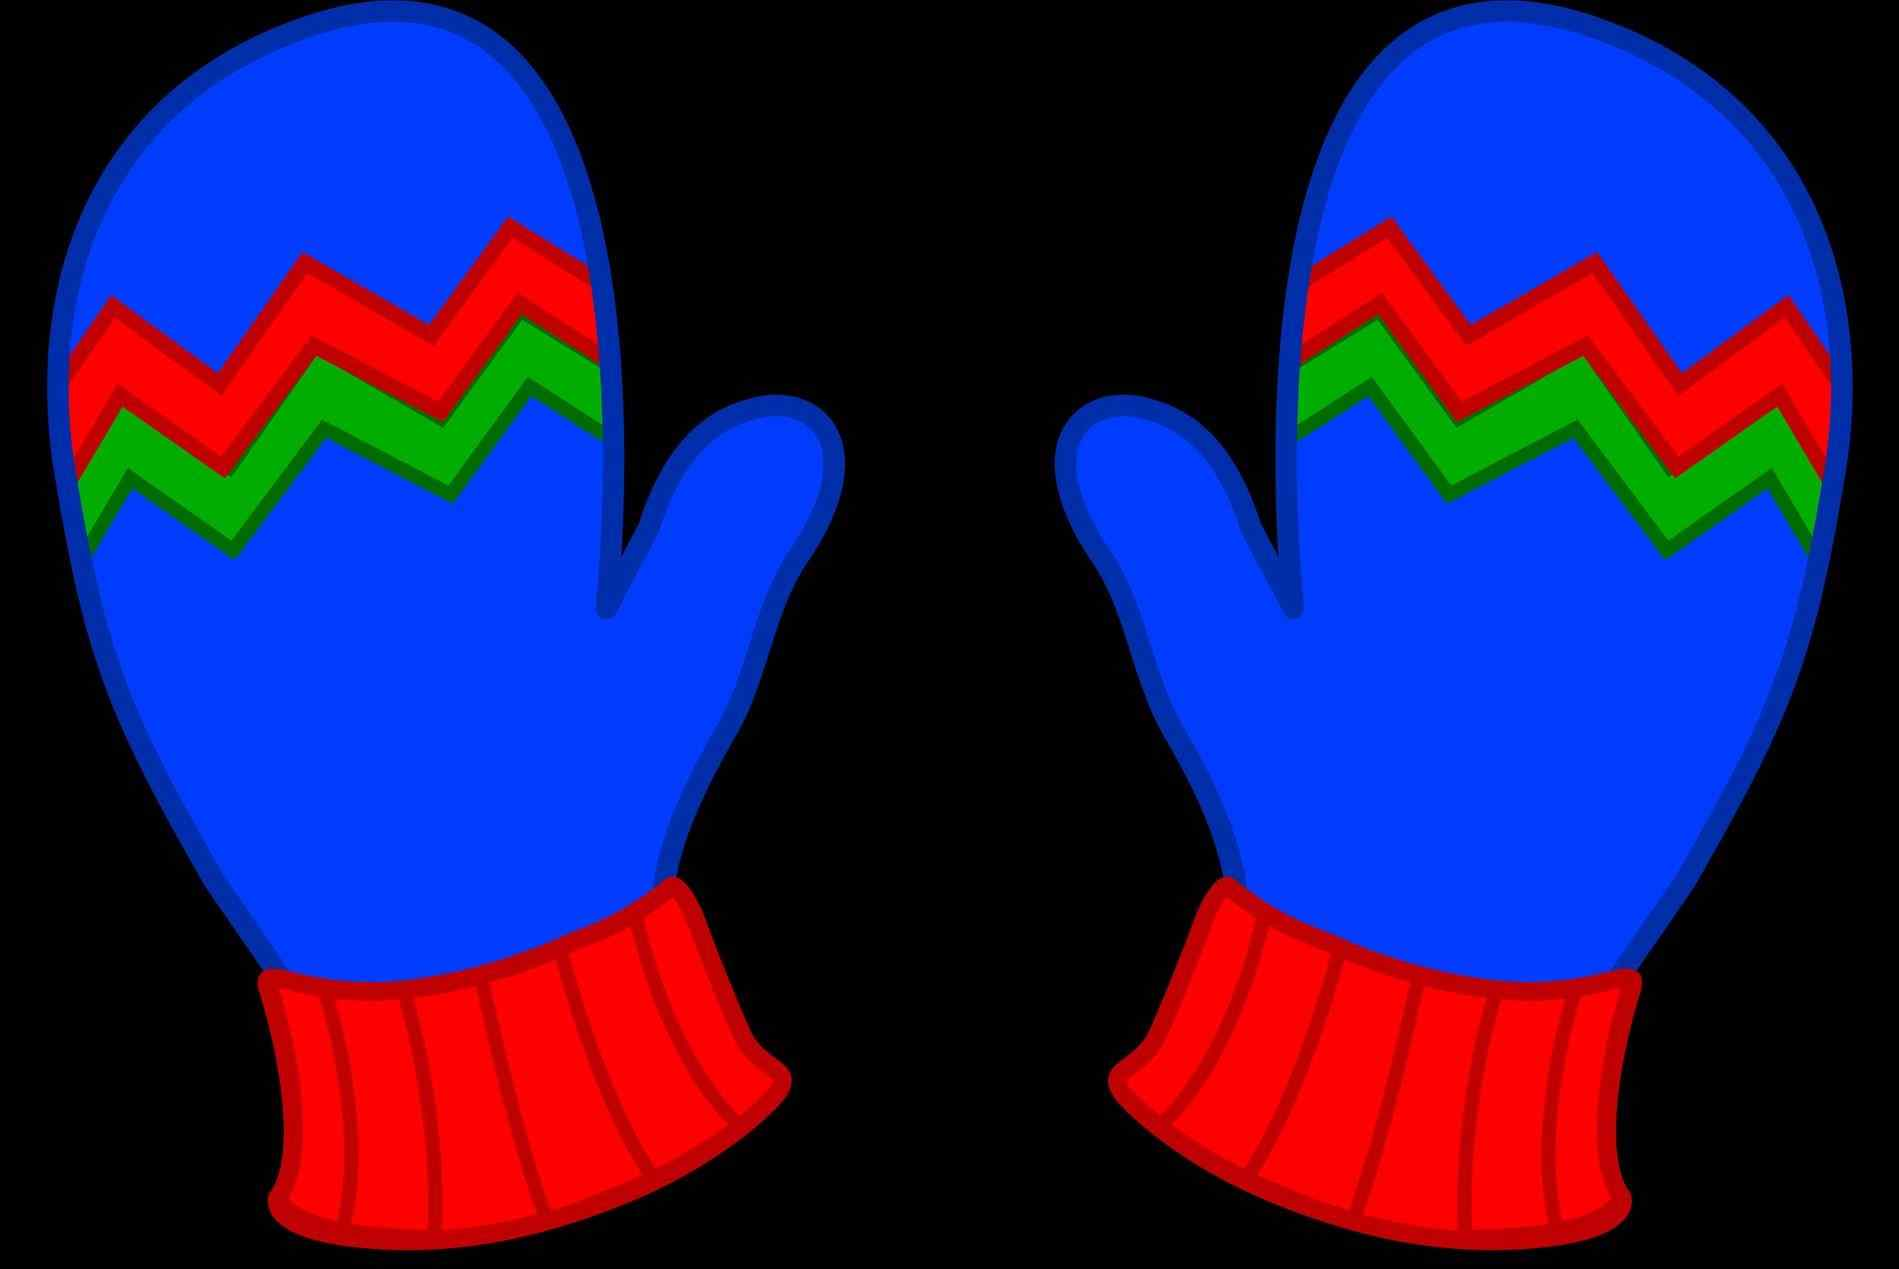 Free clipart mittens gloves. Download best on clipartmag